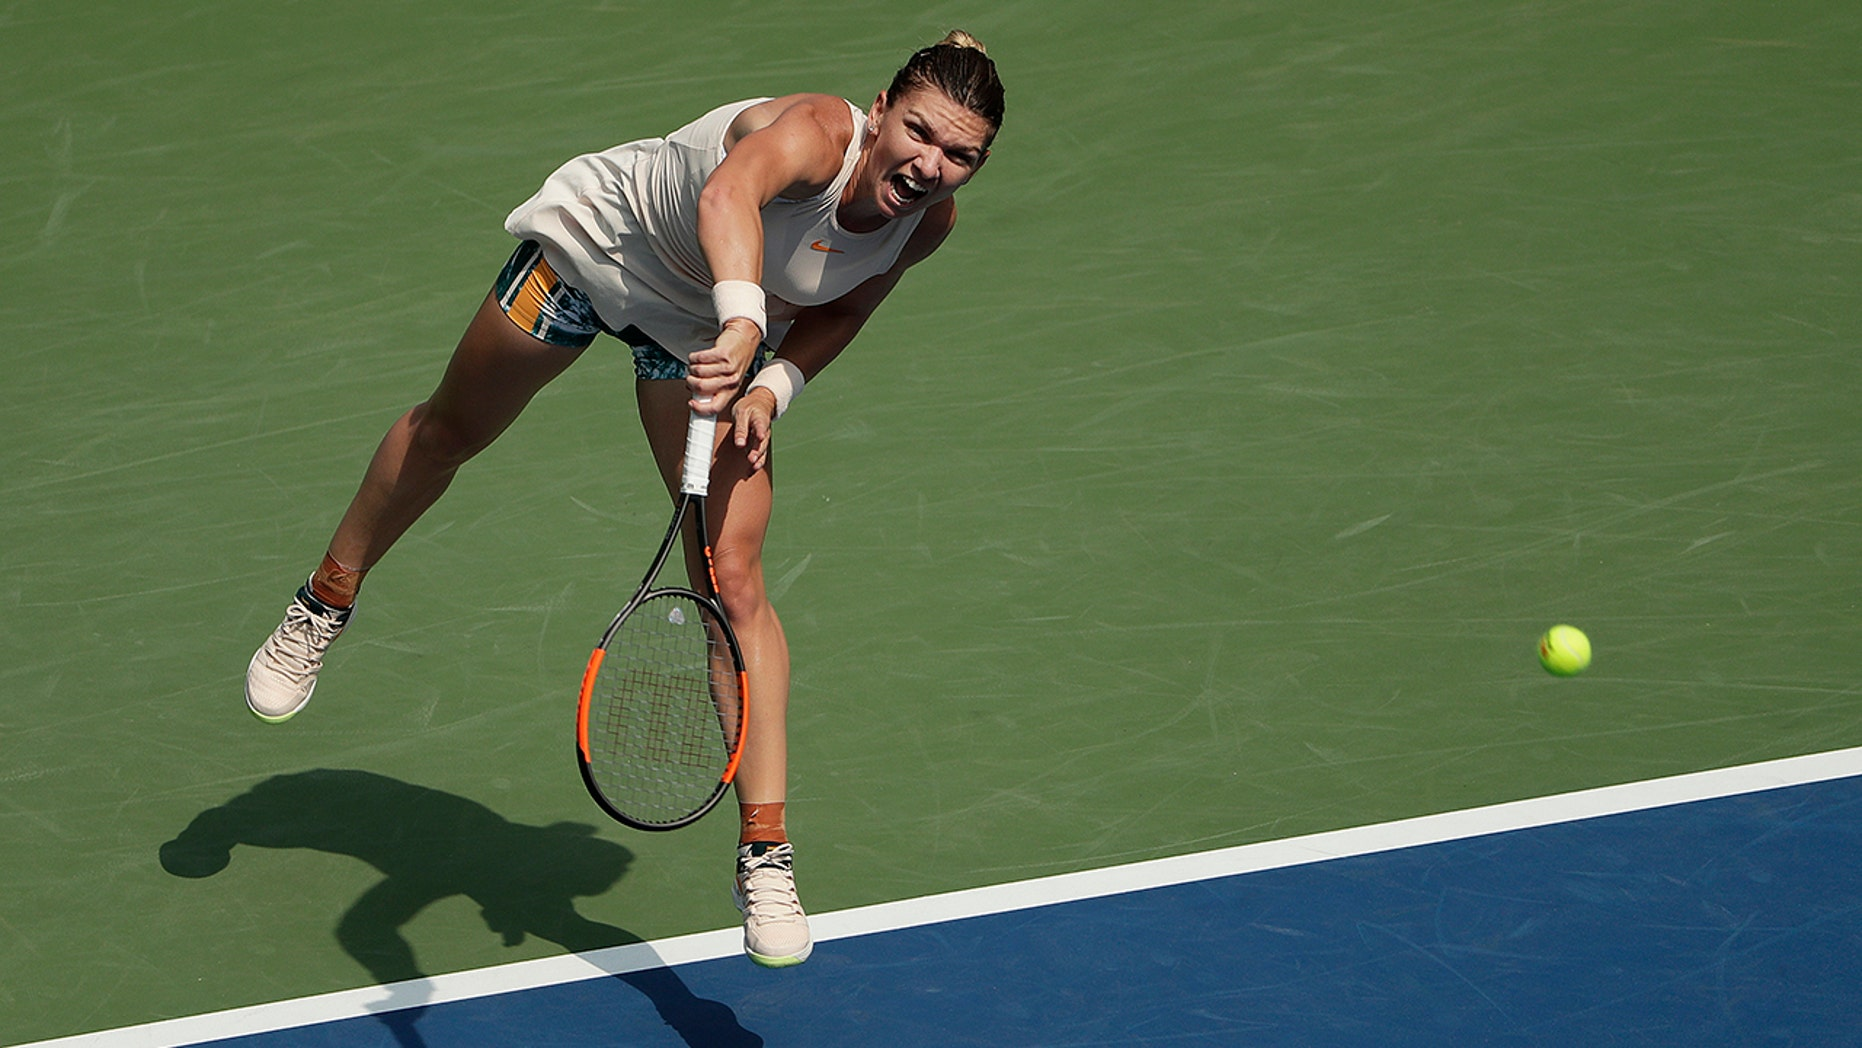 Simona Halep became the 1st No. 1-seeded woman to lose in 1st round of US Open in professional era.